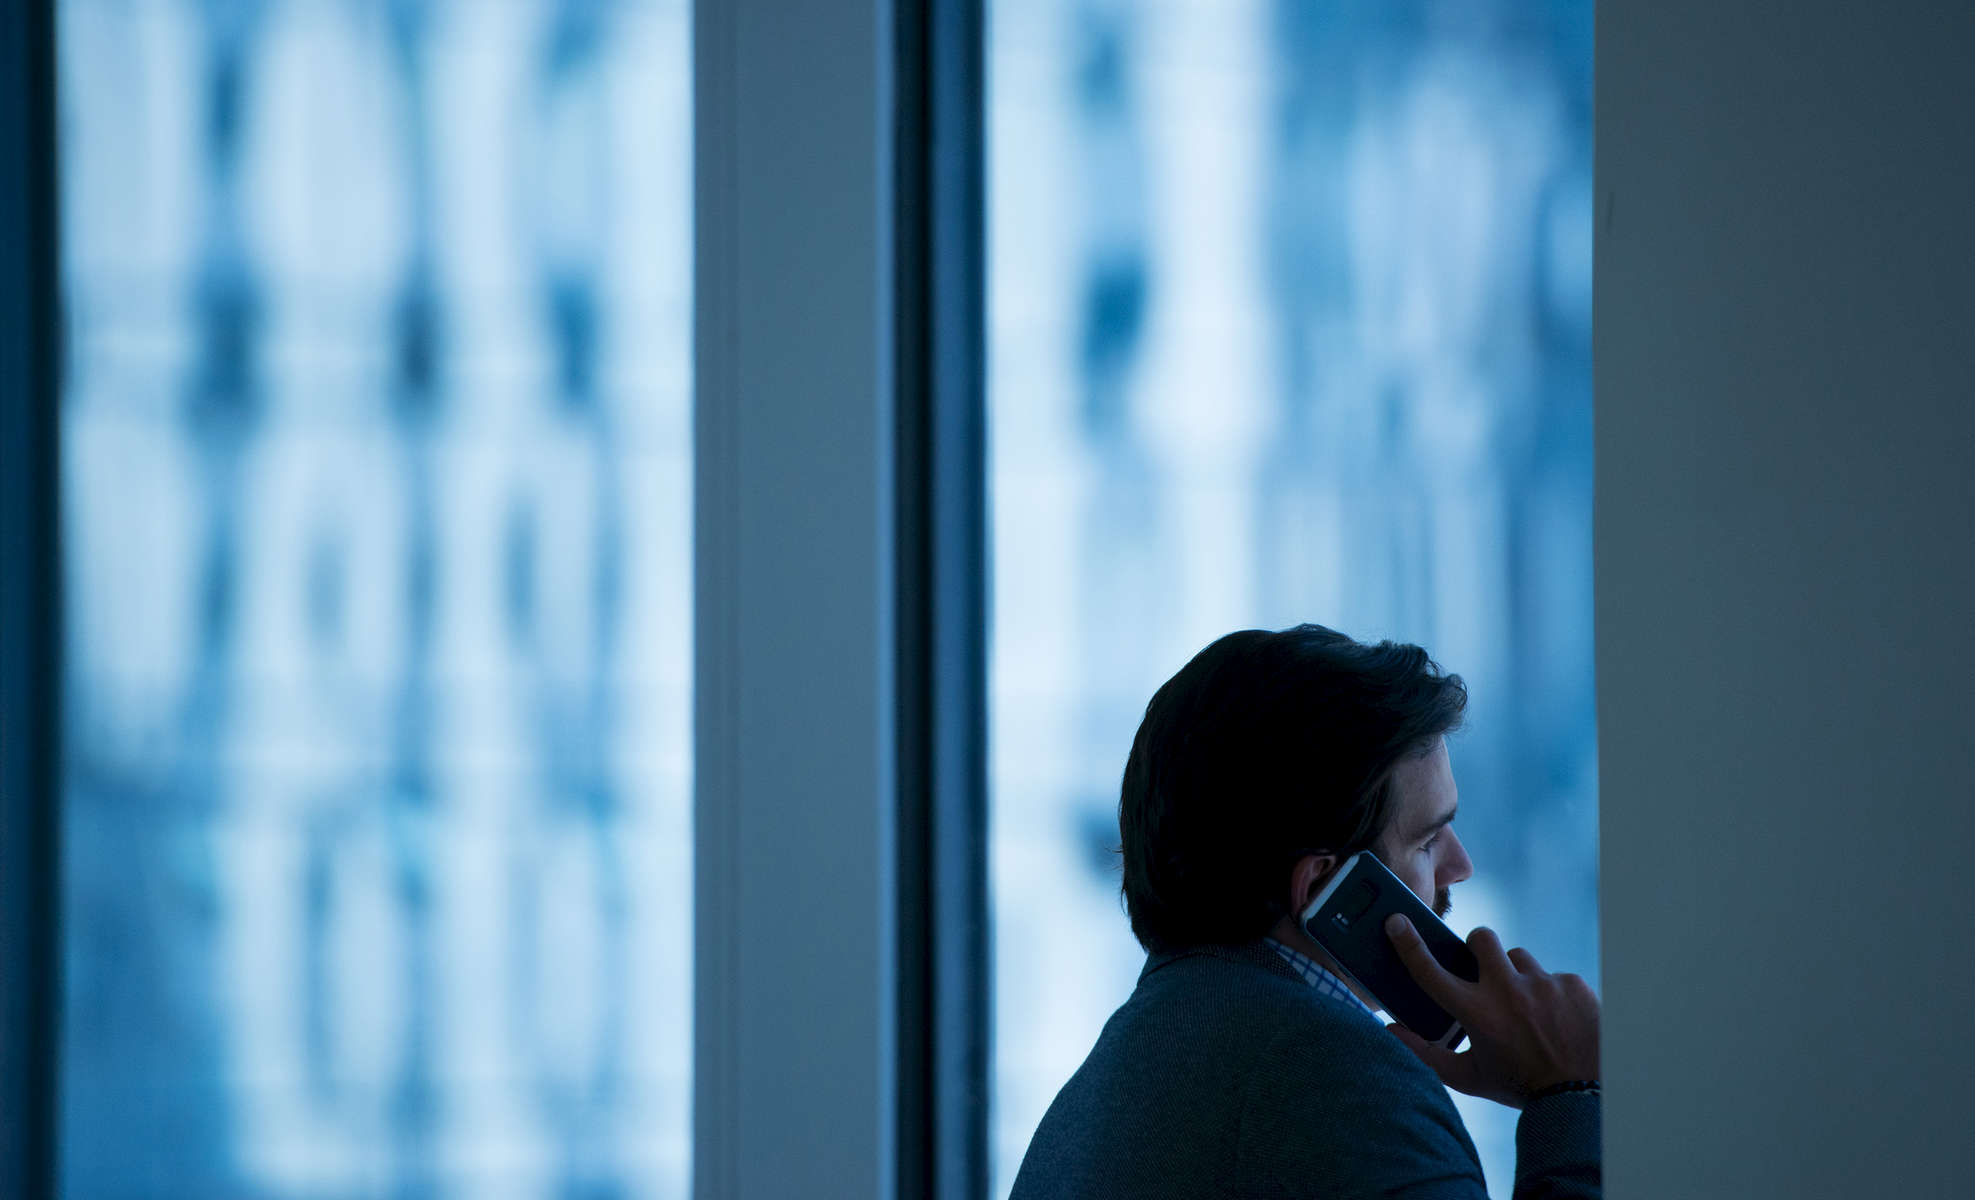 A man talking on a phone at a technology consulting firm in Chicago.